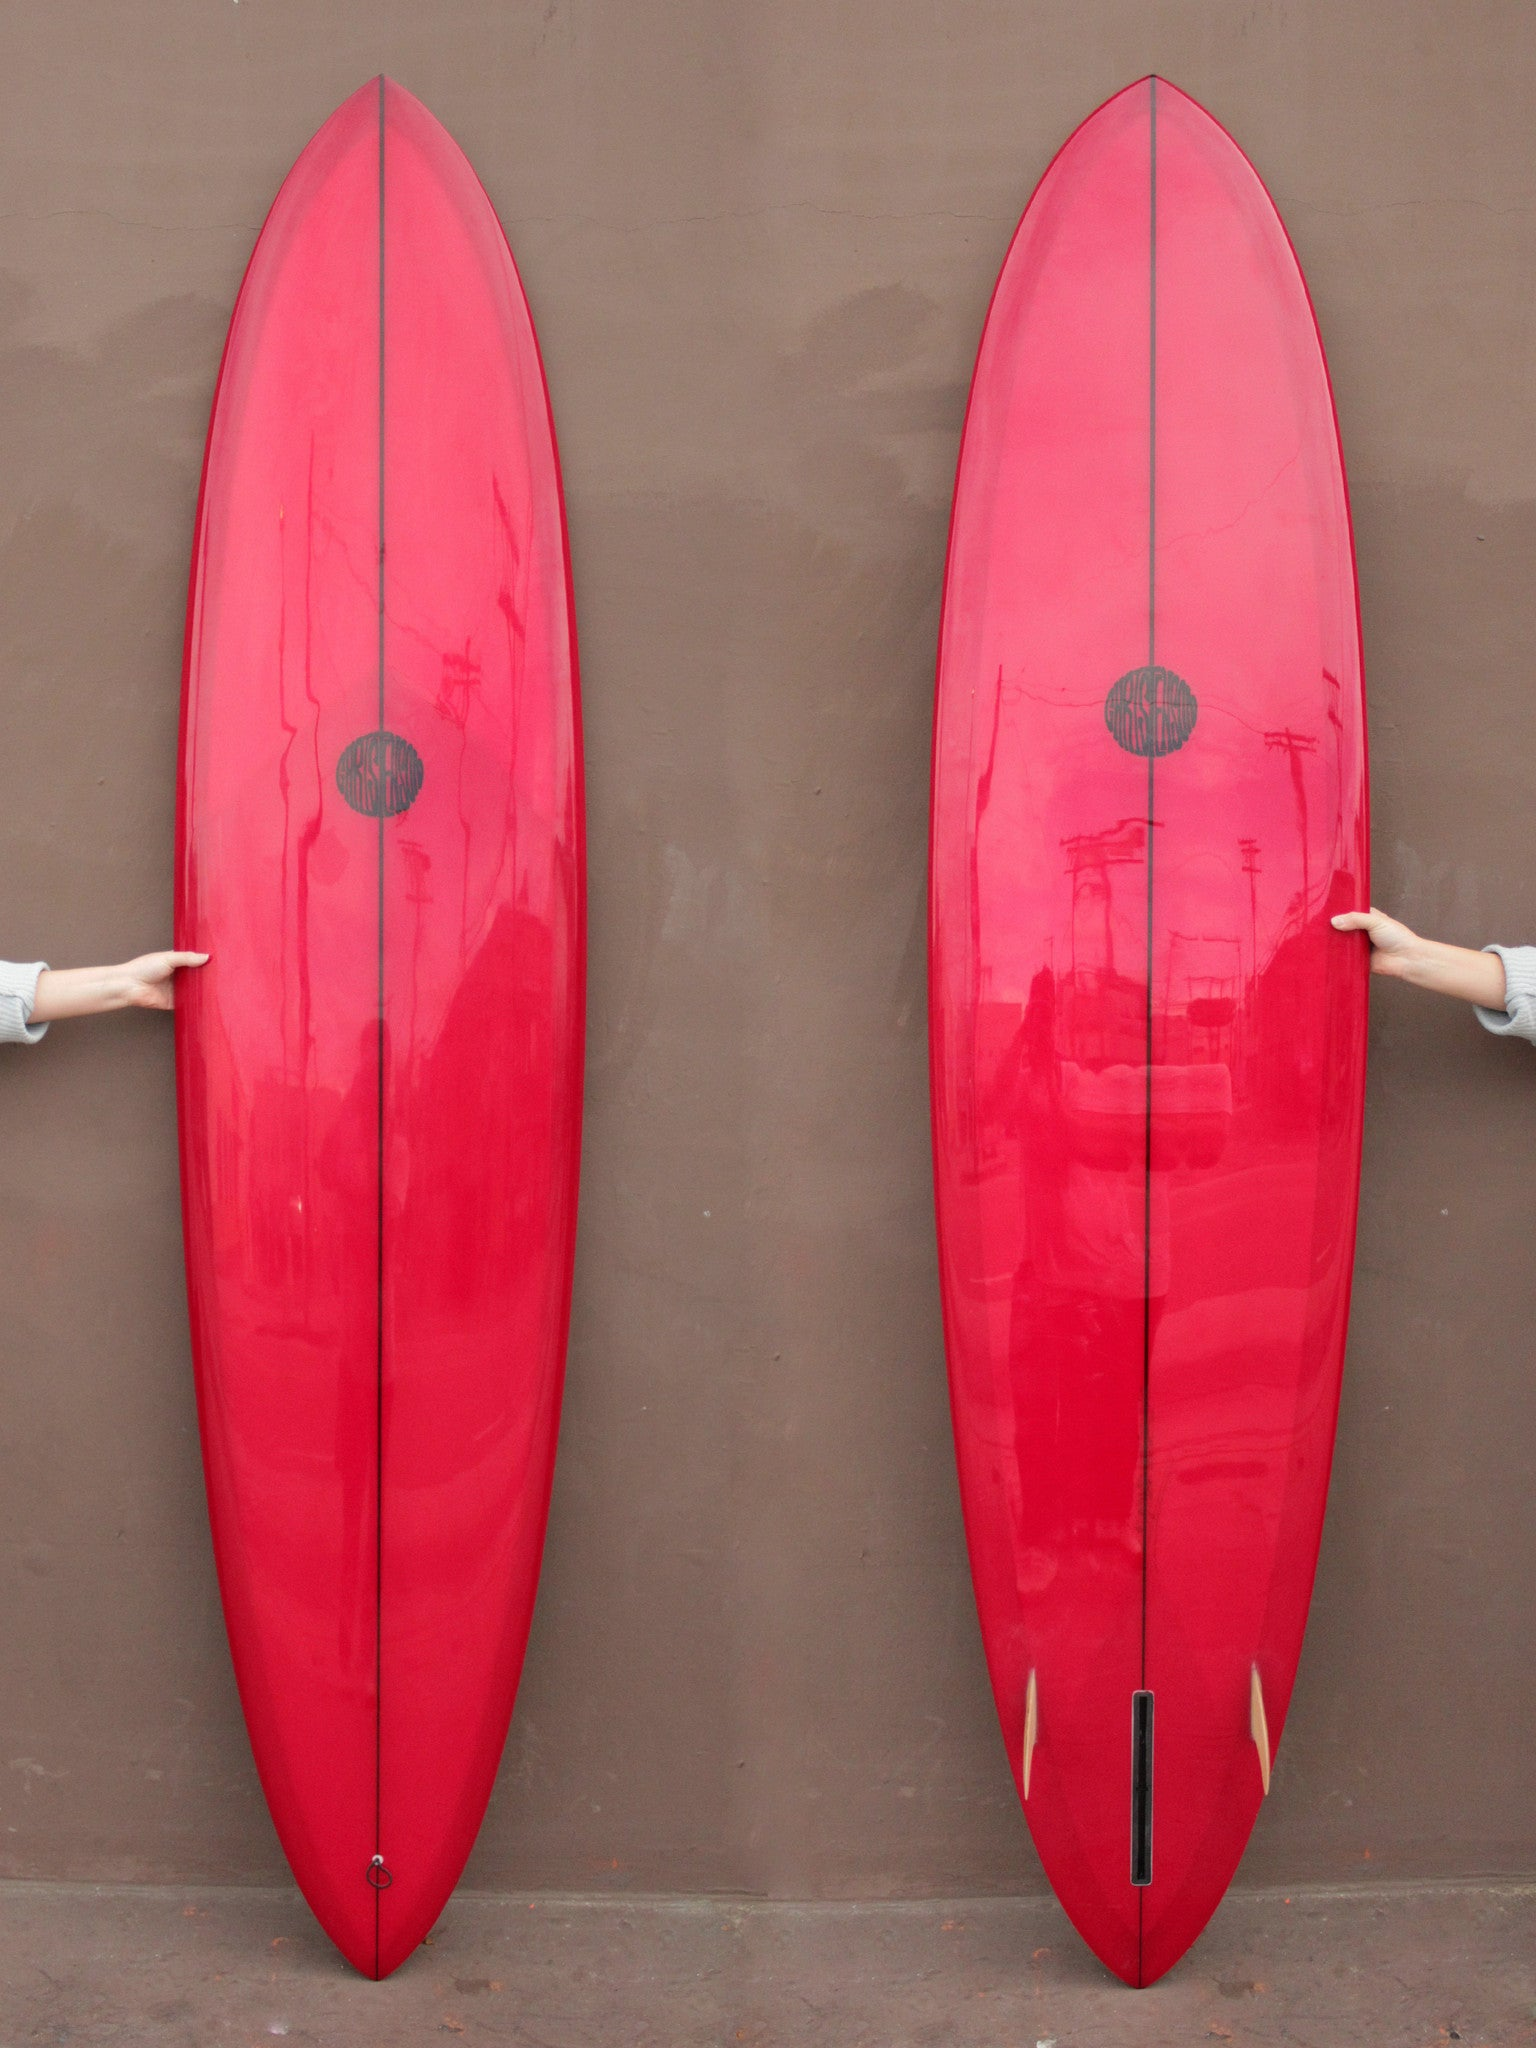 8'4 Christenson C Bucket (Used)